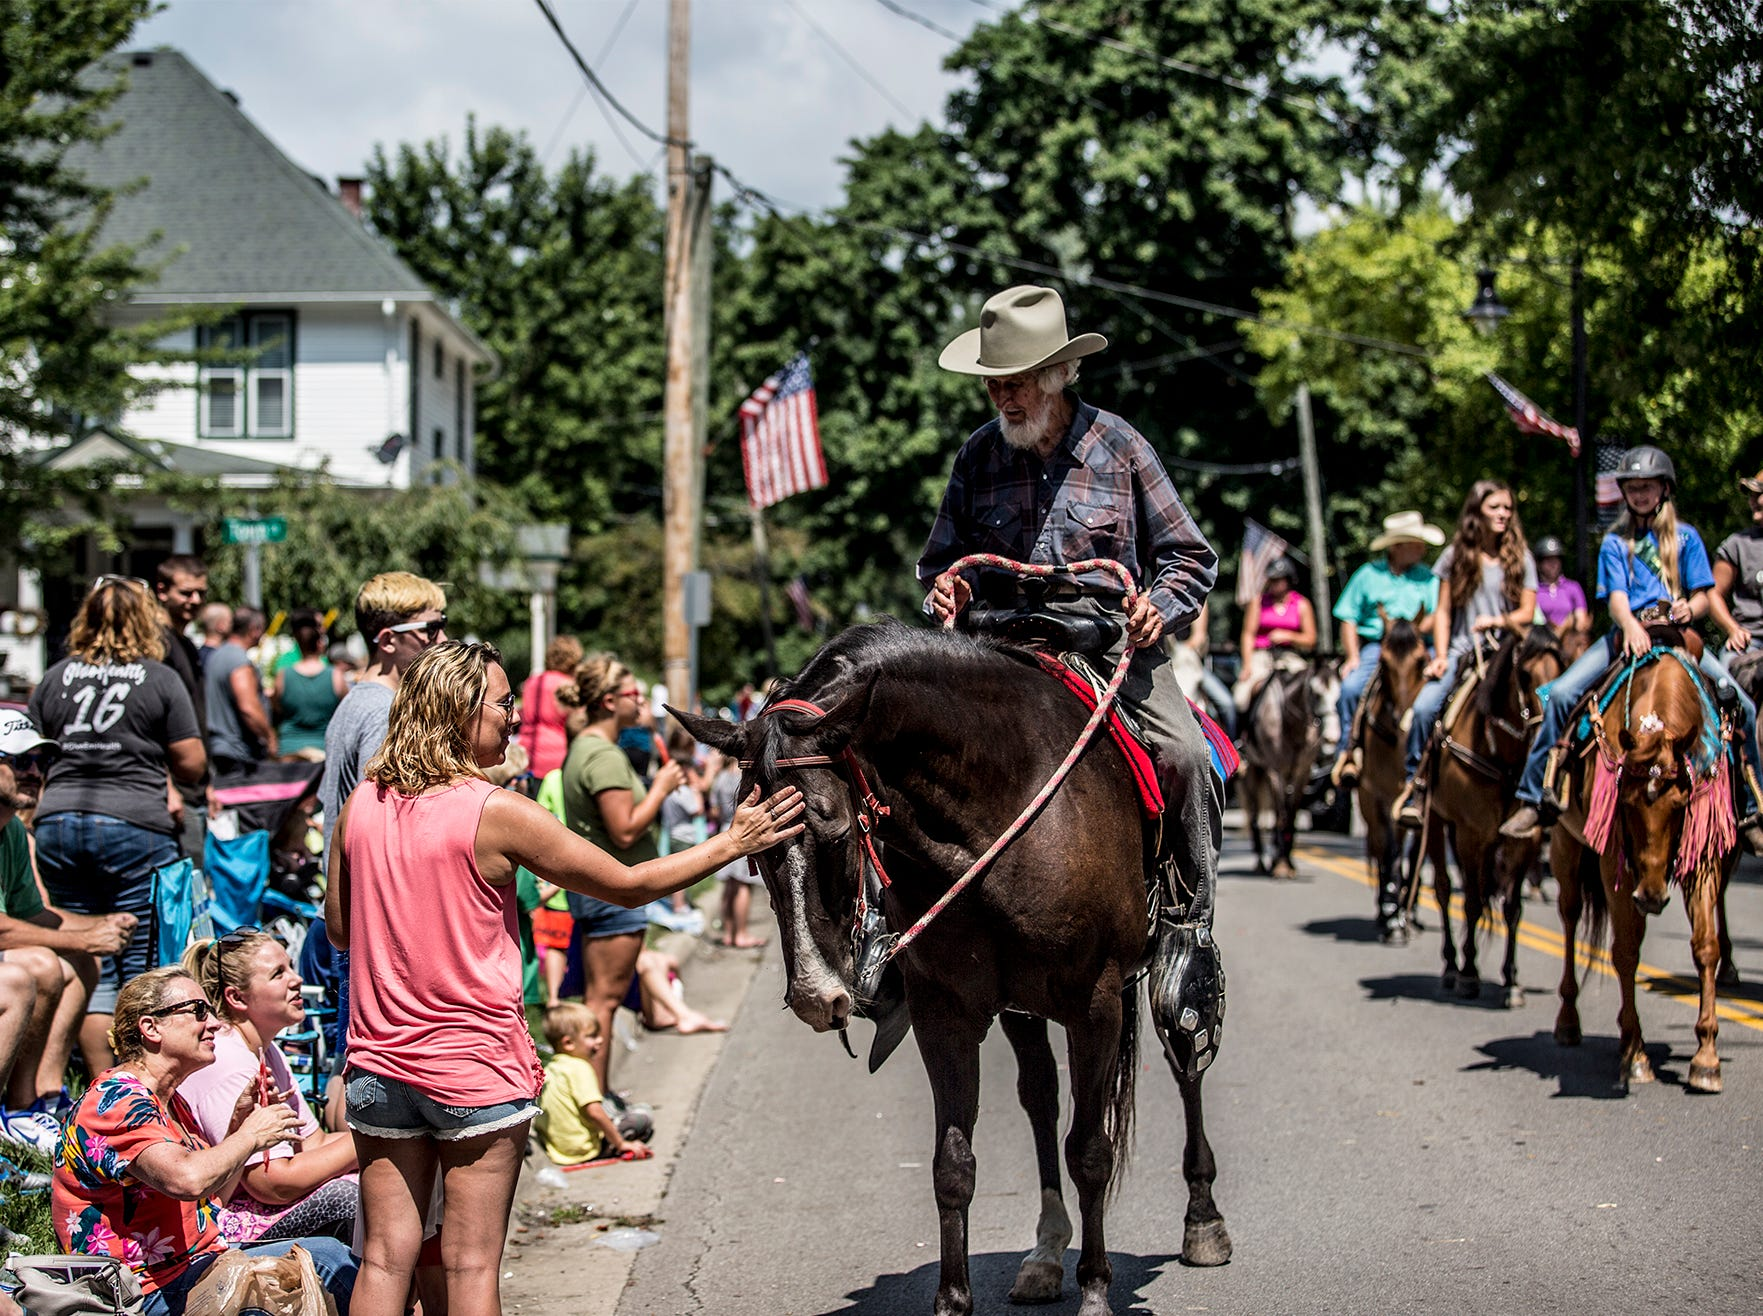 Hundreds of people lined the streets Saturday in Pataskala for the annual Pataskala Street Parade.